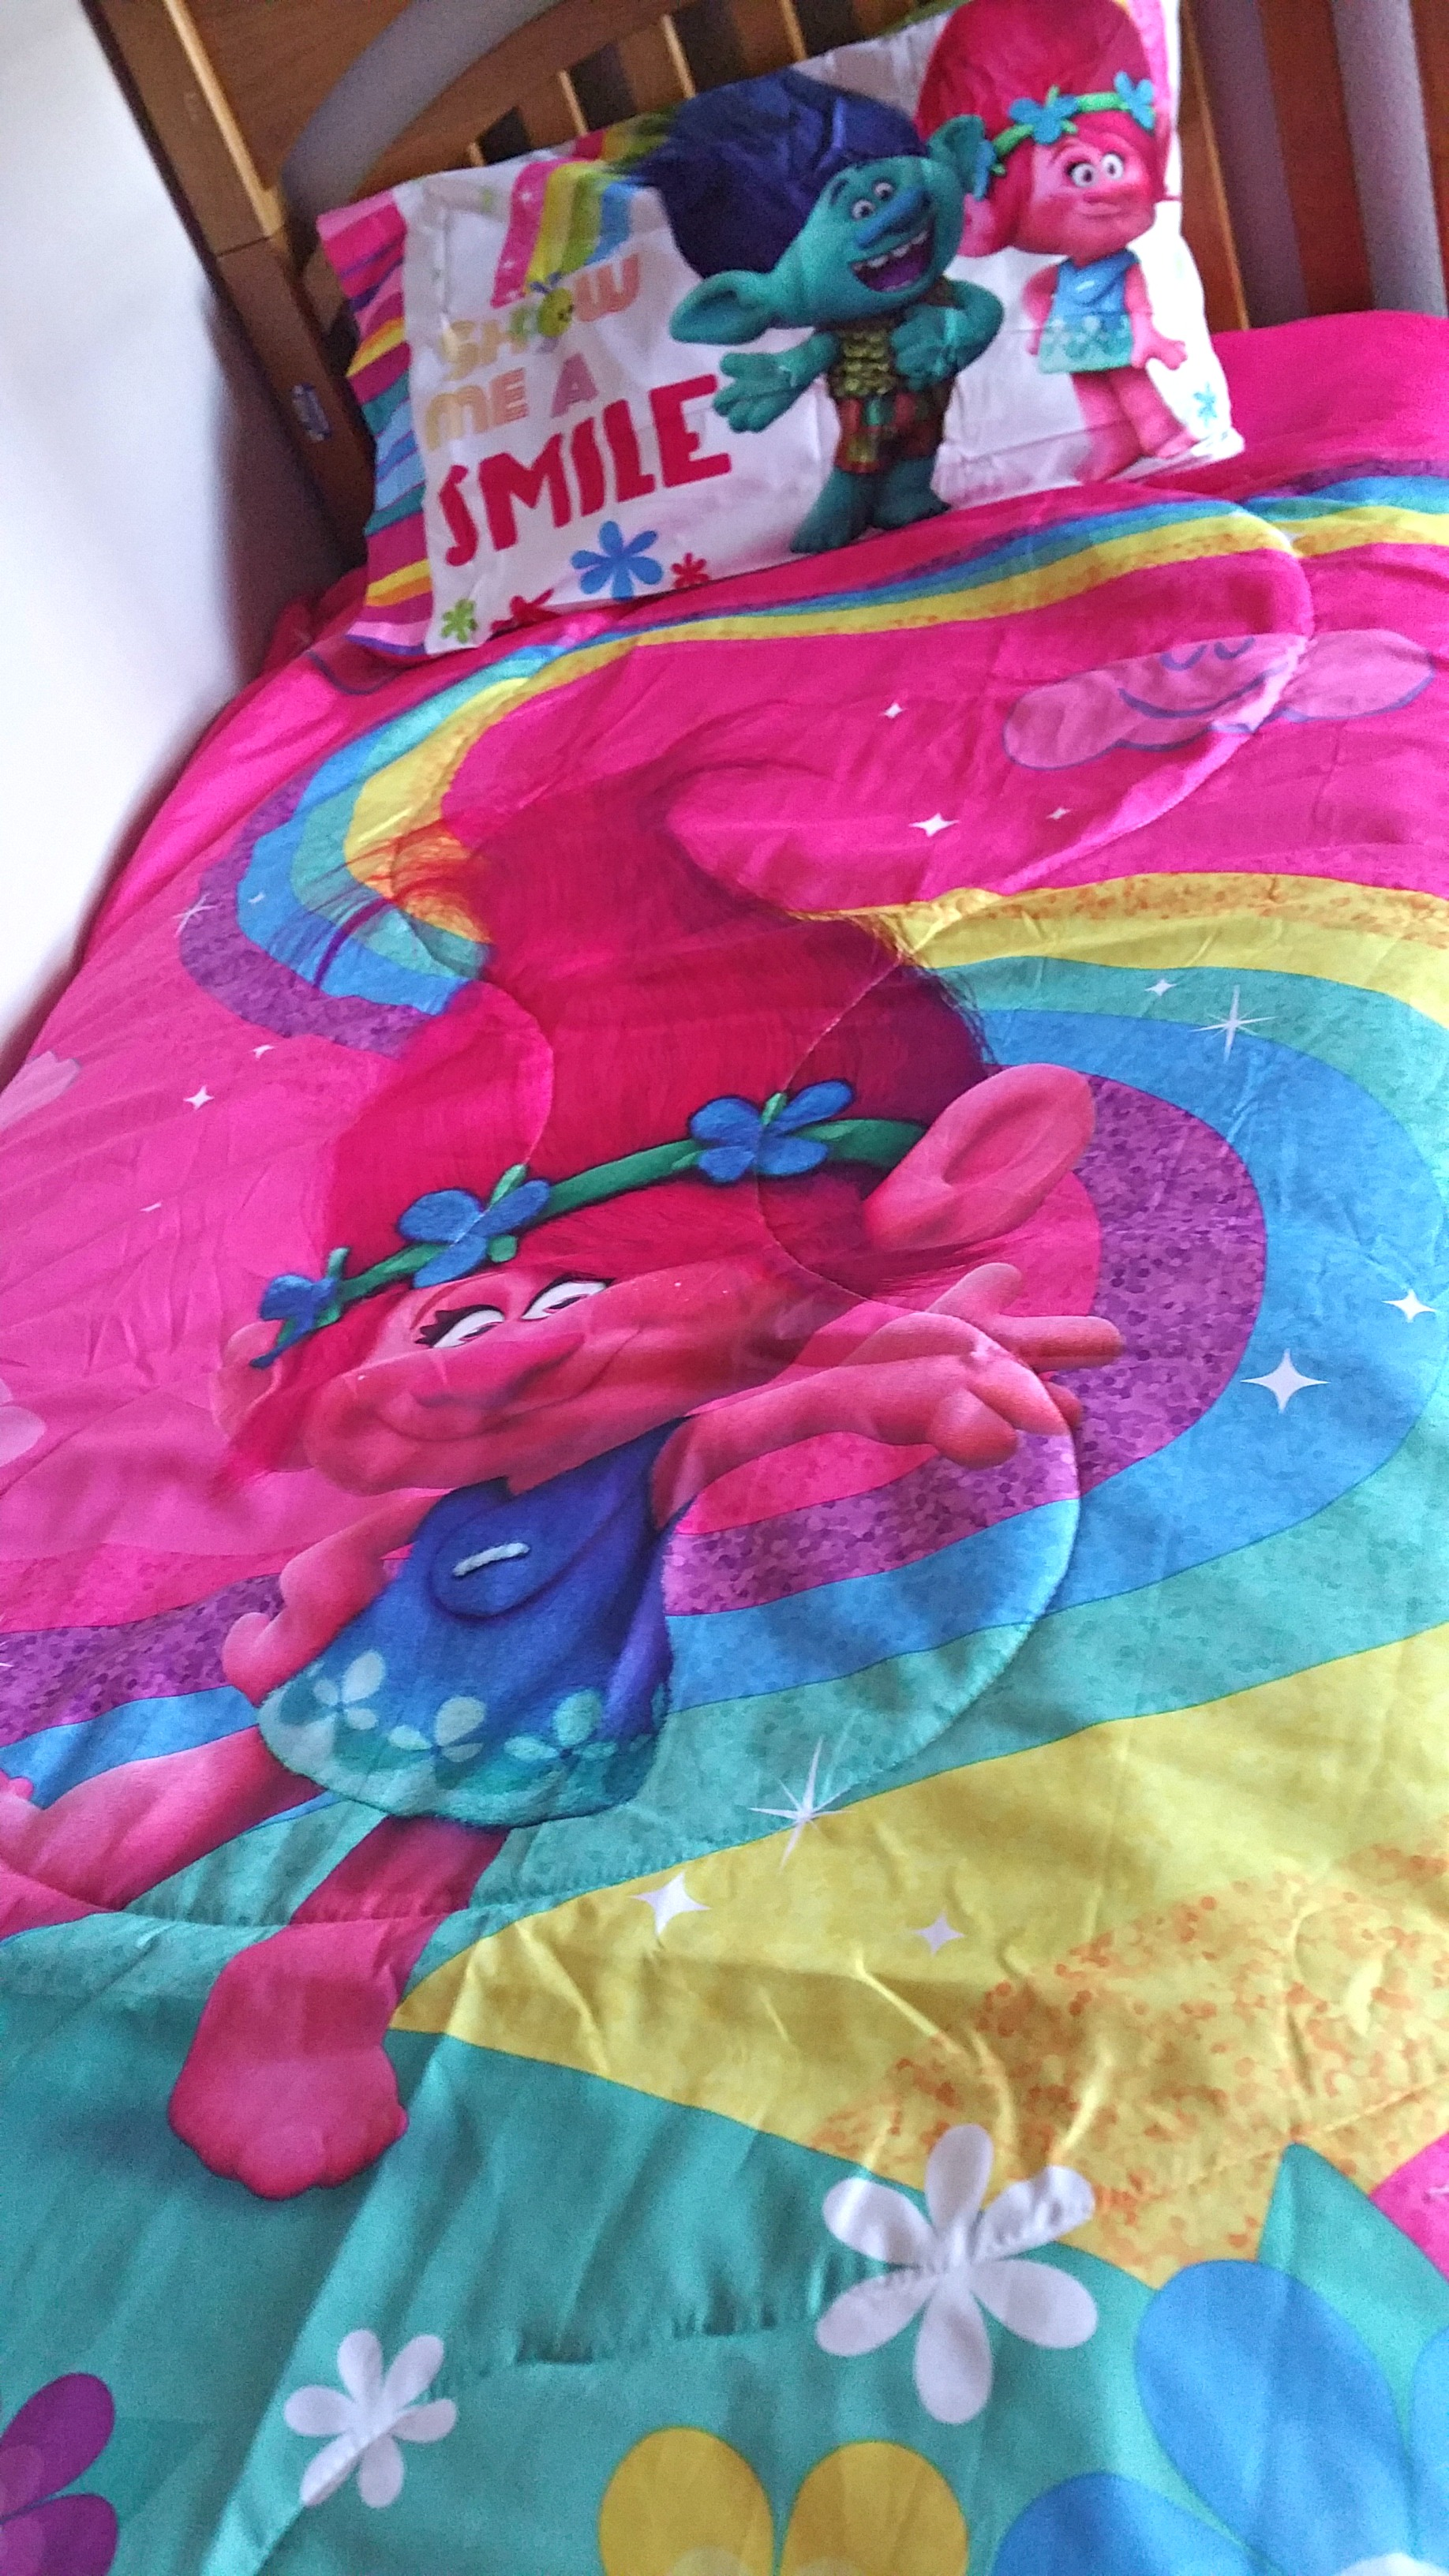 bring home dreamwork's trolls with themed bedding from